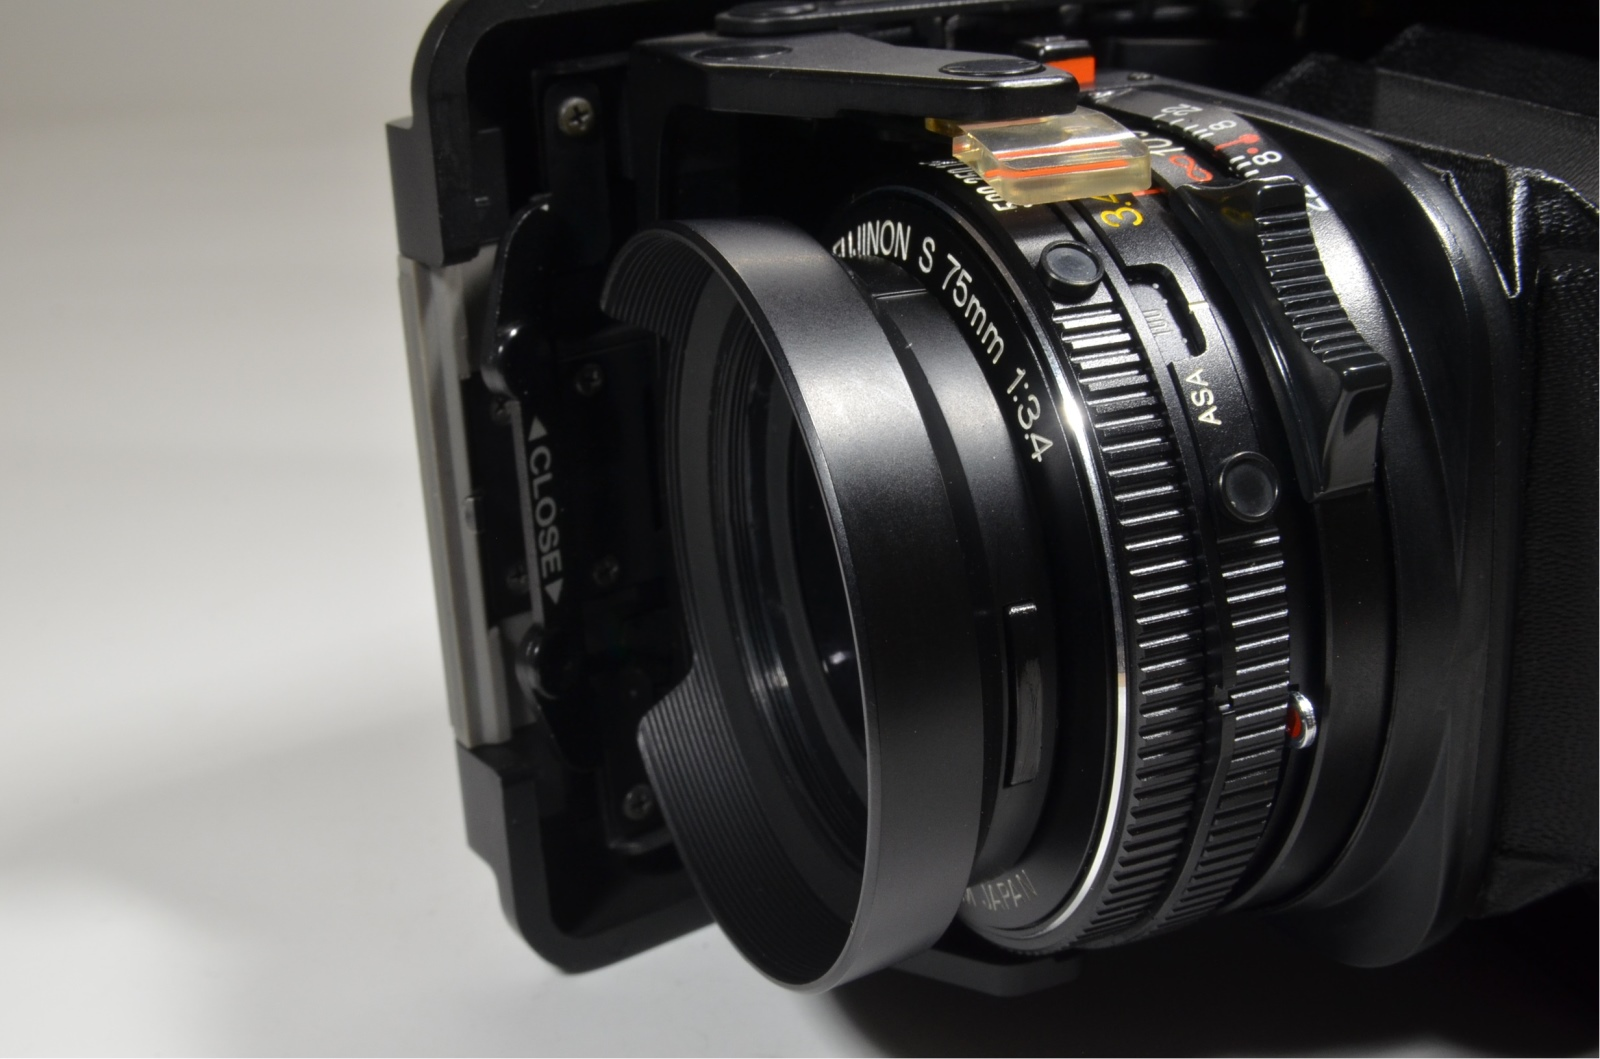 fujifilm fujica gs645 75mm f3.4 with gs bracket grip and lens hood